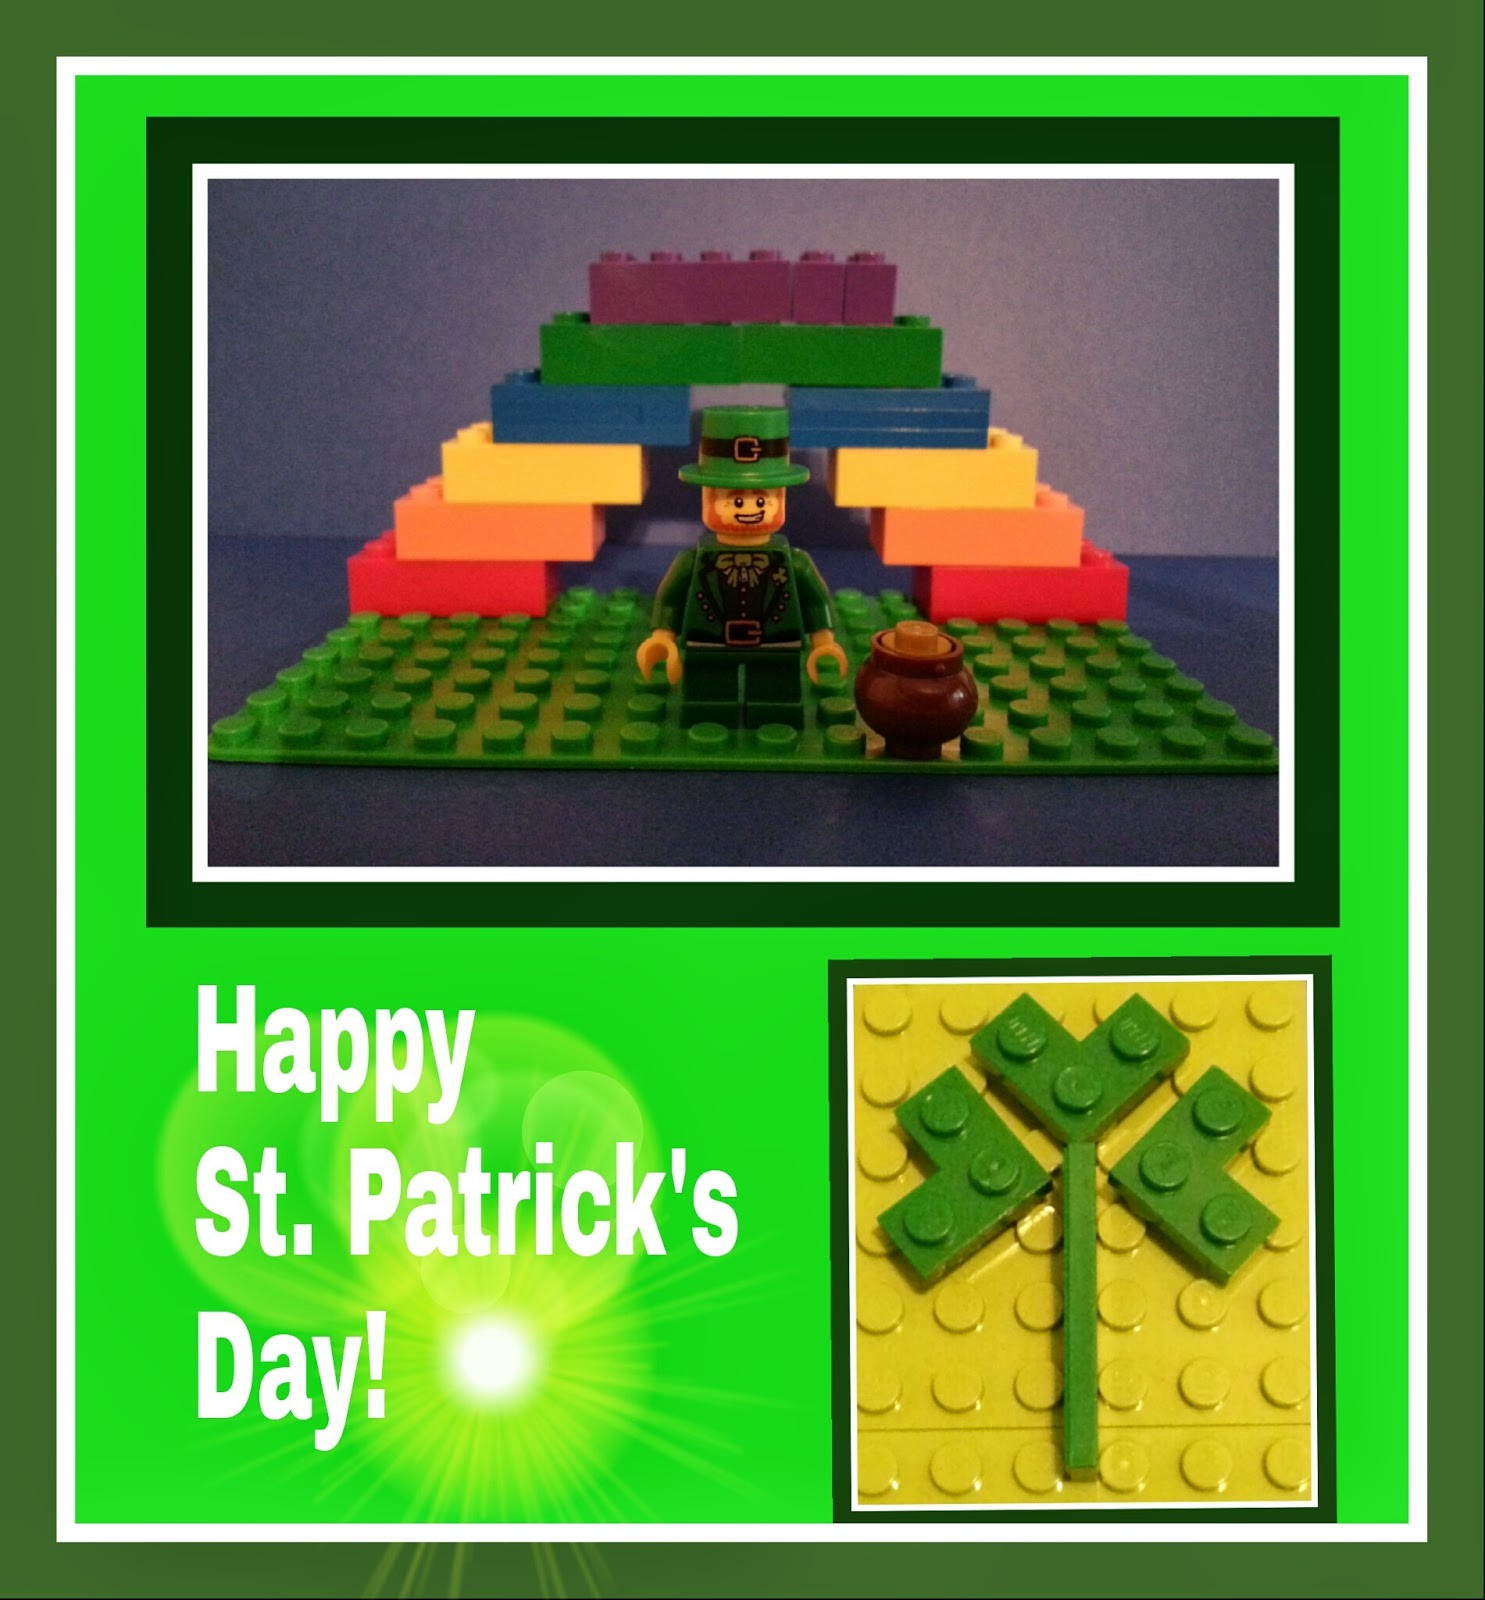 St. Patrick's Day LEGO Fun